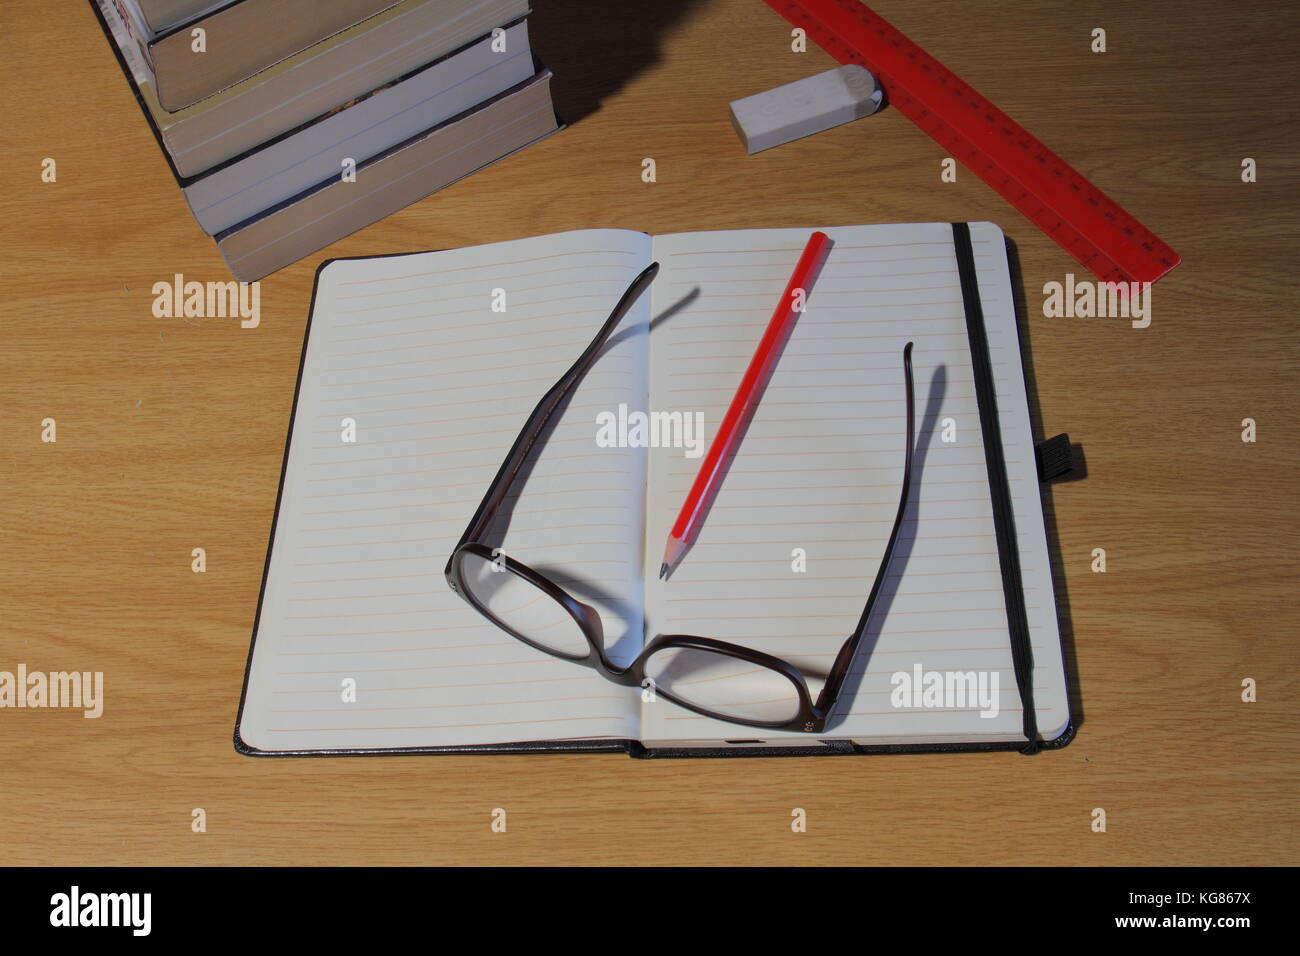 View from above of a desk with study materials and aids in landscape format - Stock Image